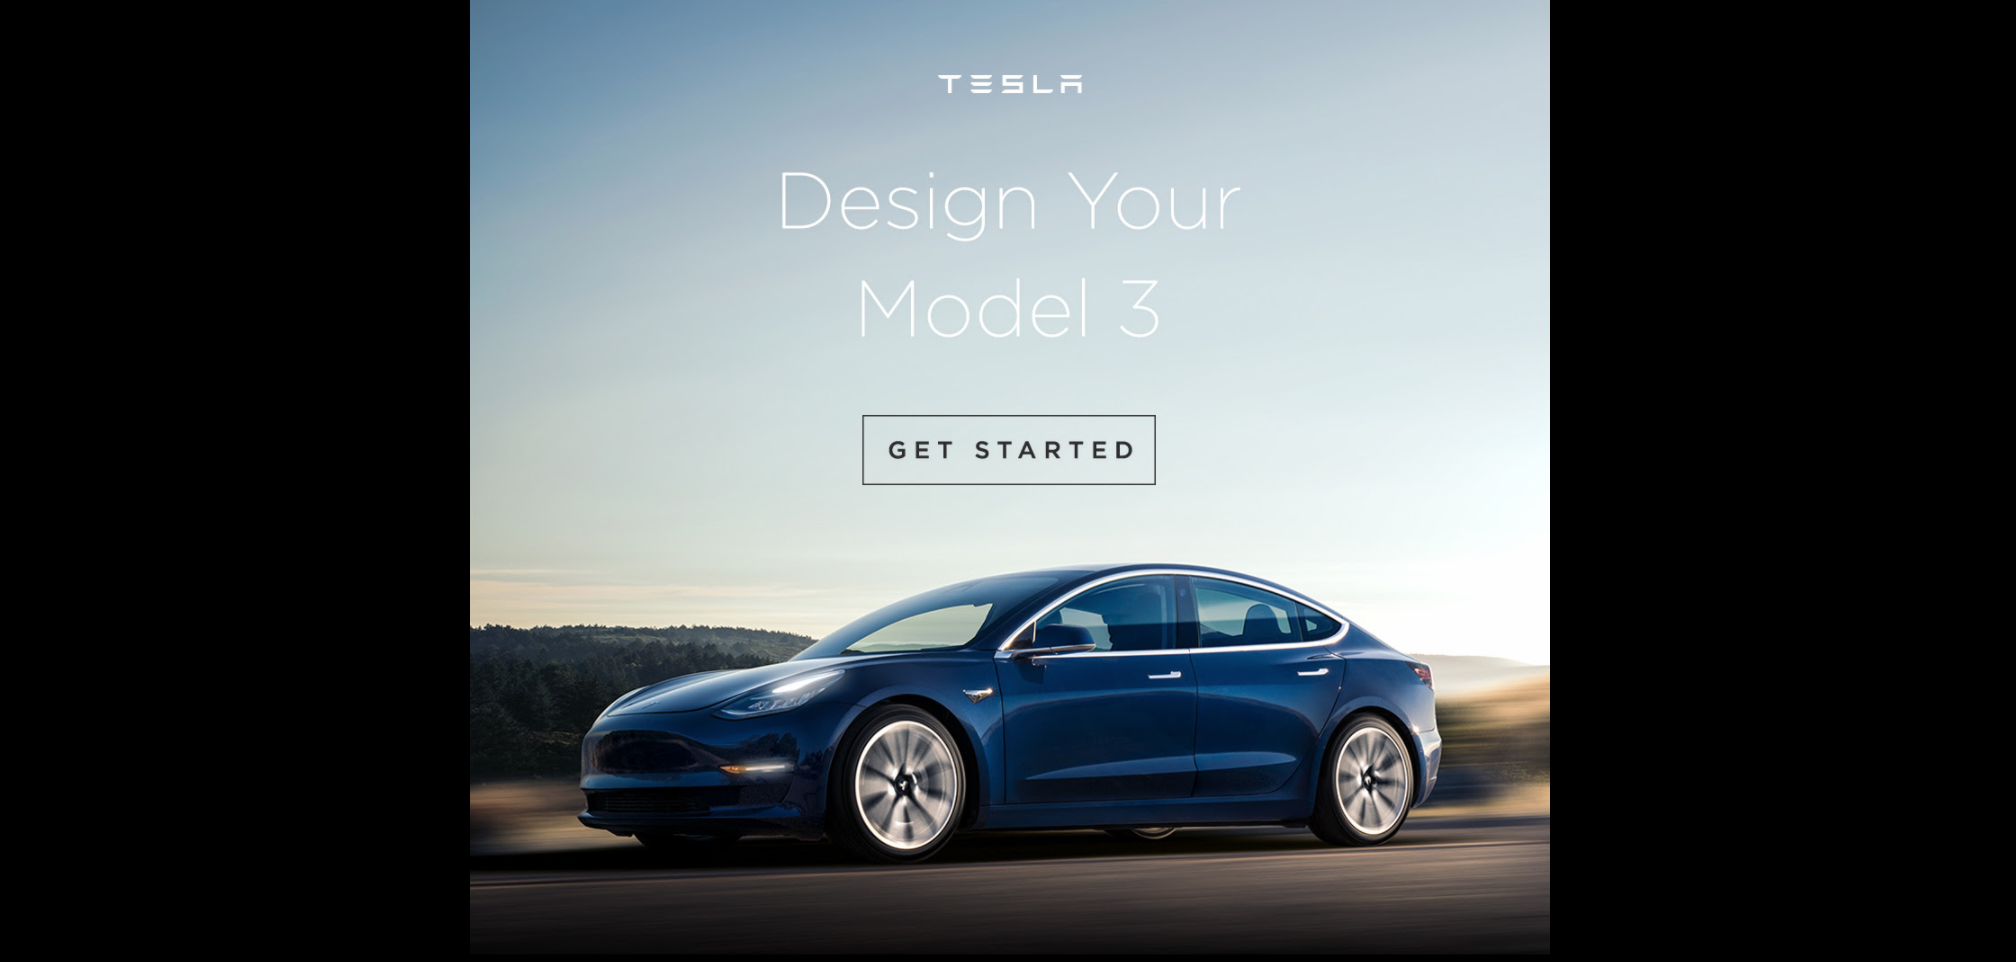 The Invites Are First Sign That Tesla S Early Struggles To Ramp Up Production Of Its Affordable Long Range Electric Vehicle Being Overcome